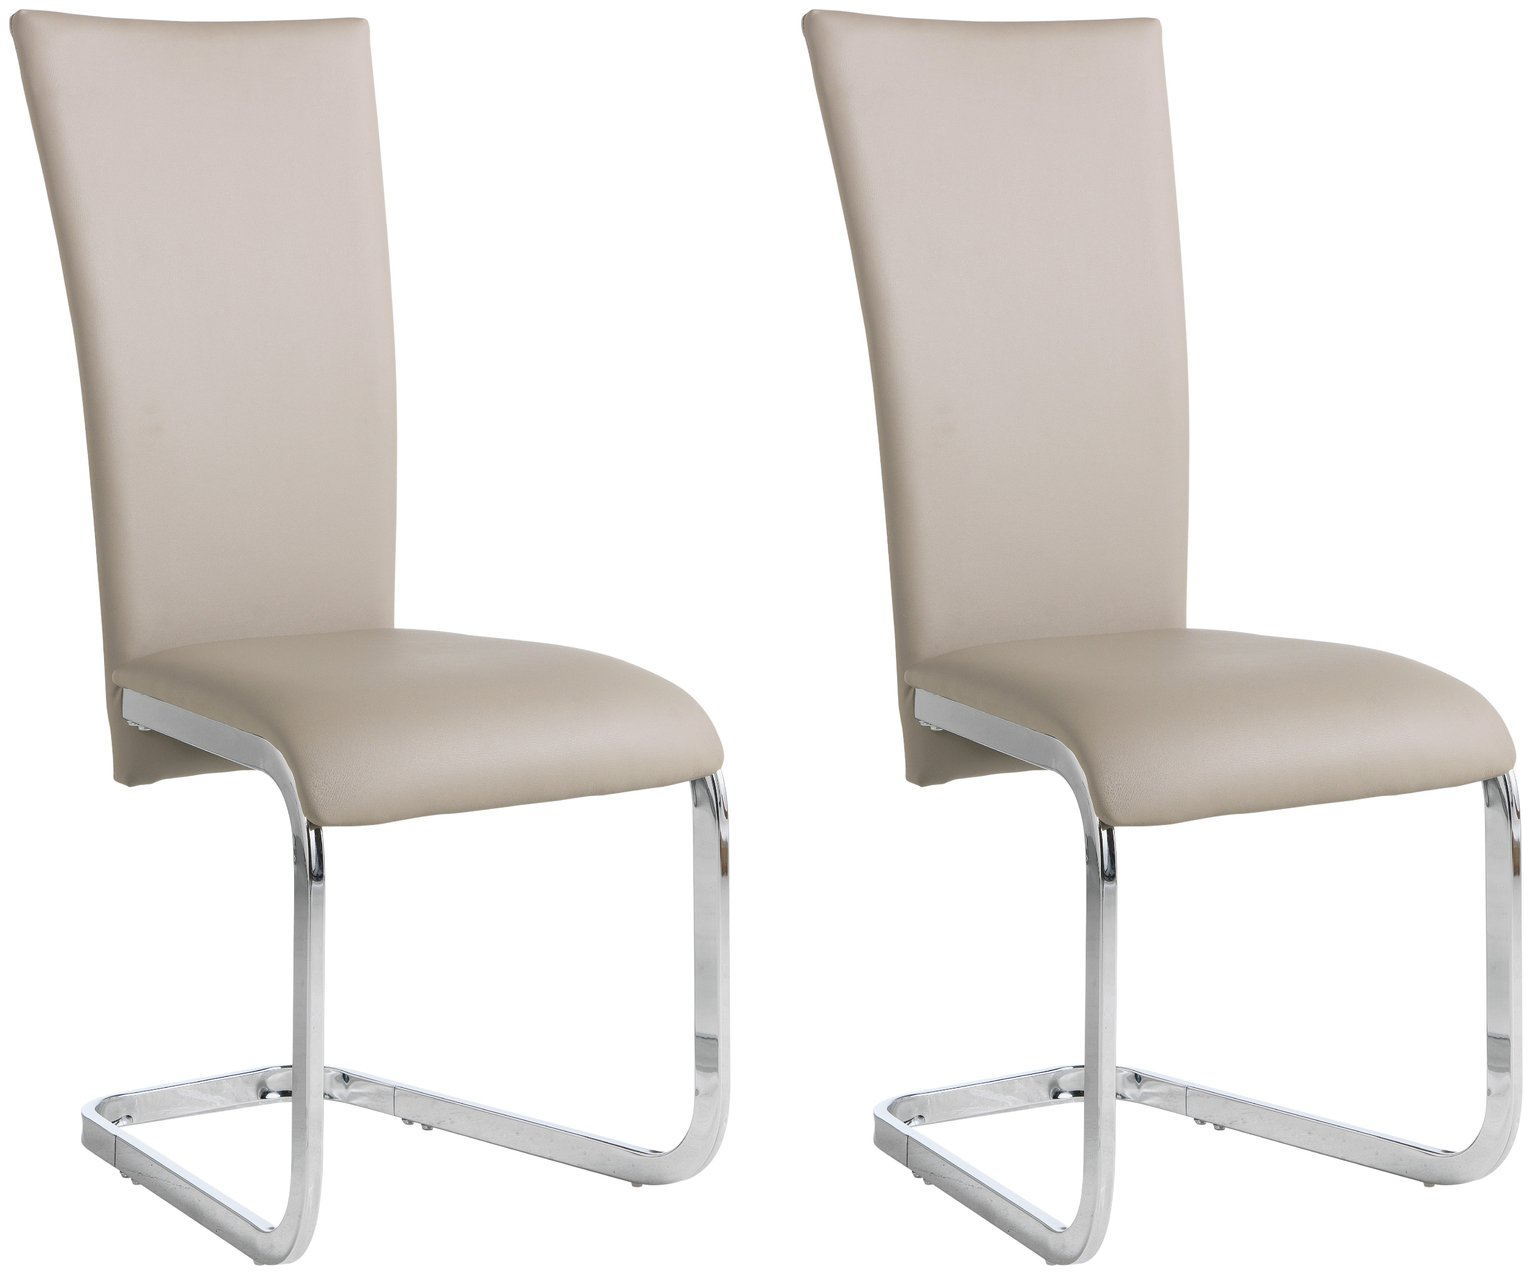 Image of Collection Oriana Pair of Cantilever Chairs - Nude